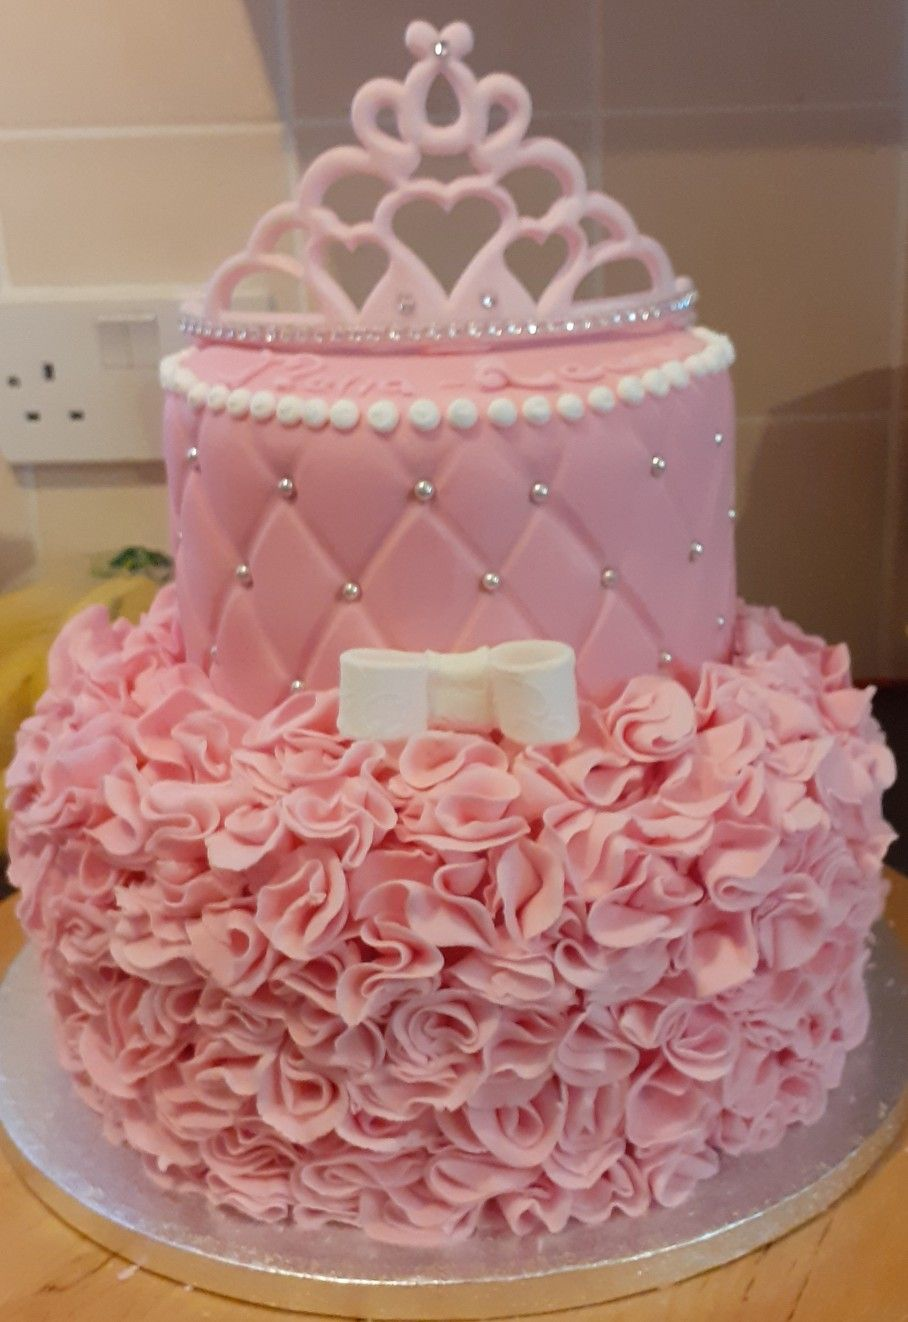 Birthday cake for a little princess in 2020 cake